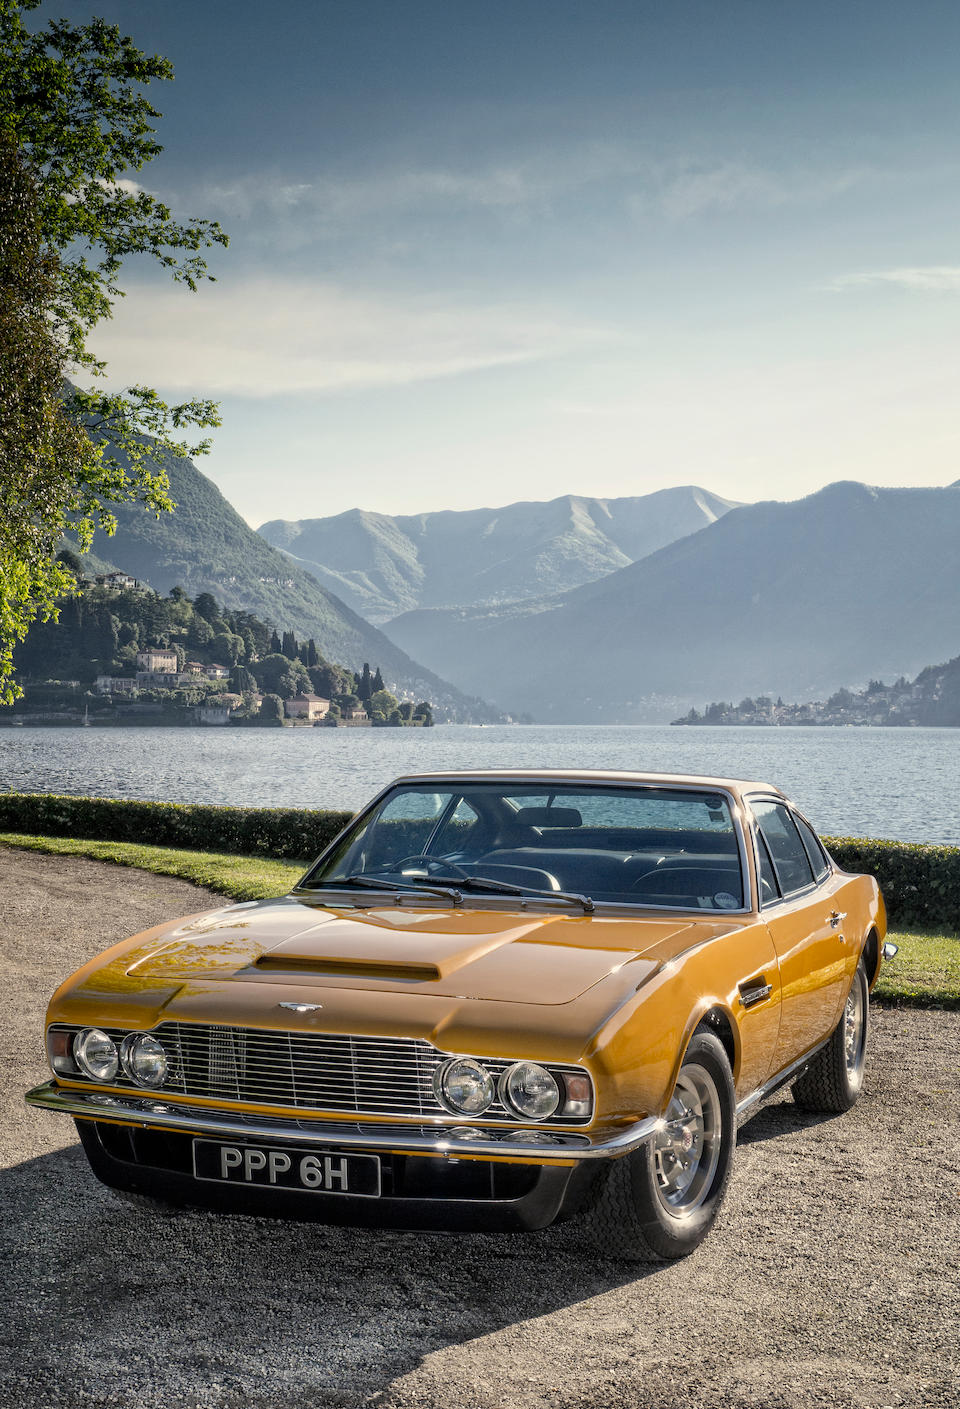 'The Persuaders!' Lord Brett Sinclair,1970 Aston Martin DBS Sports Saloon  Chassis no. DBS/5636/R Engine no. 400/4665/S